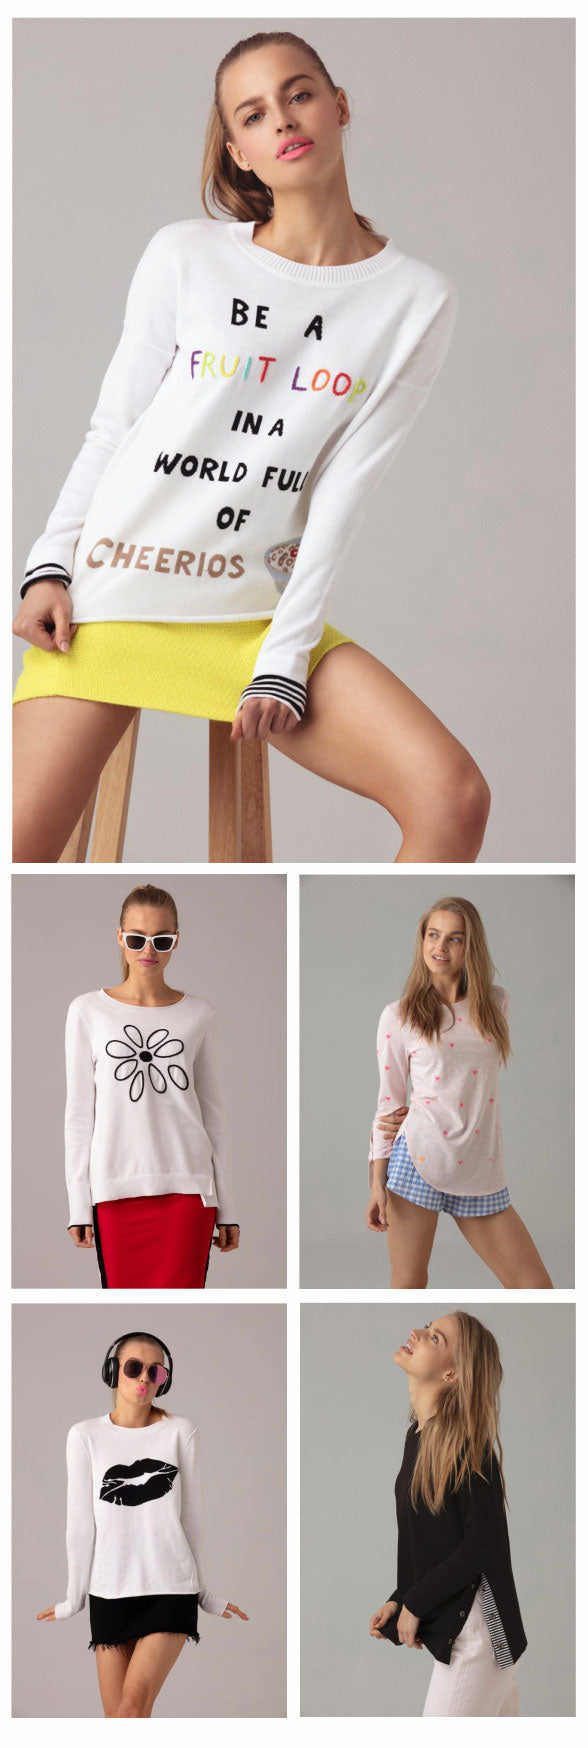 Lisa Todd images. Five fun cotton sweaters.